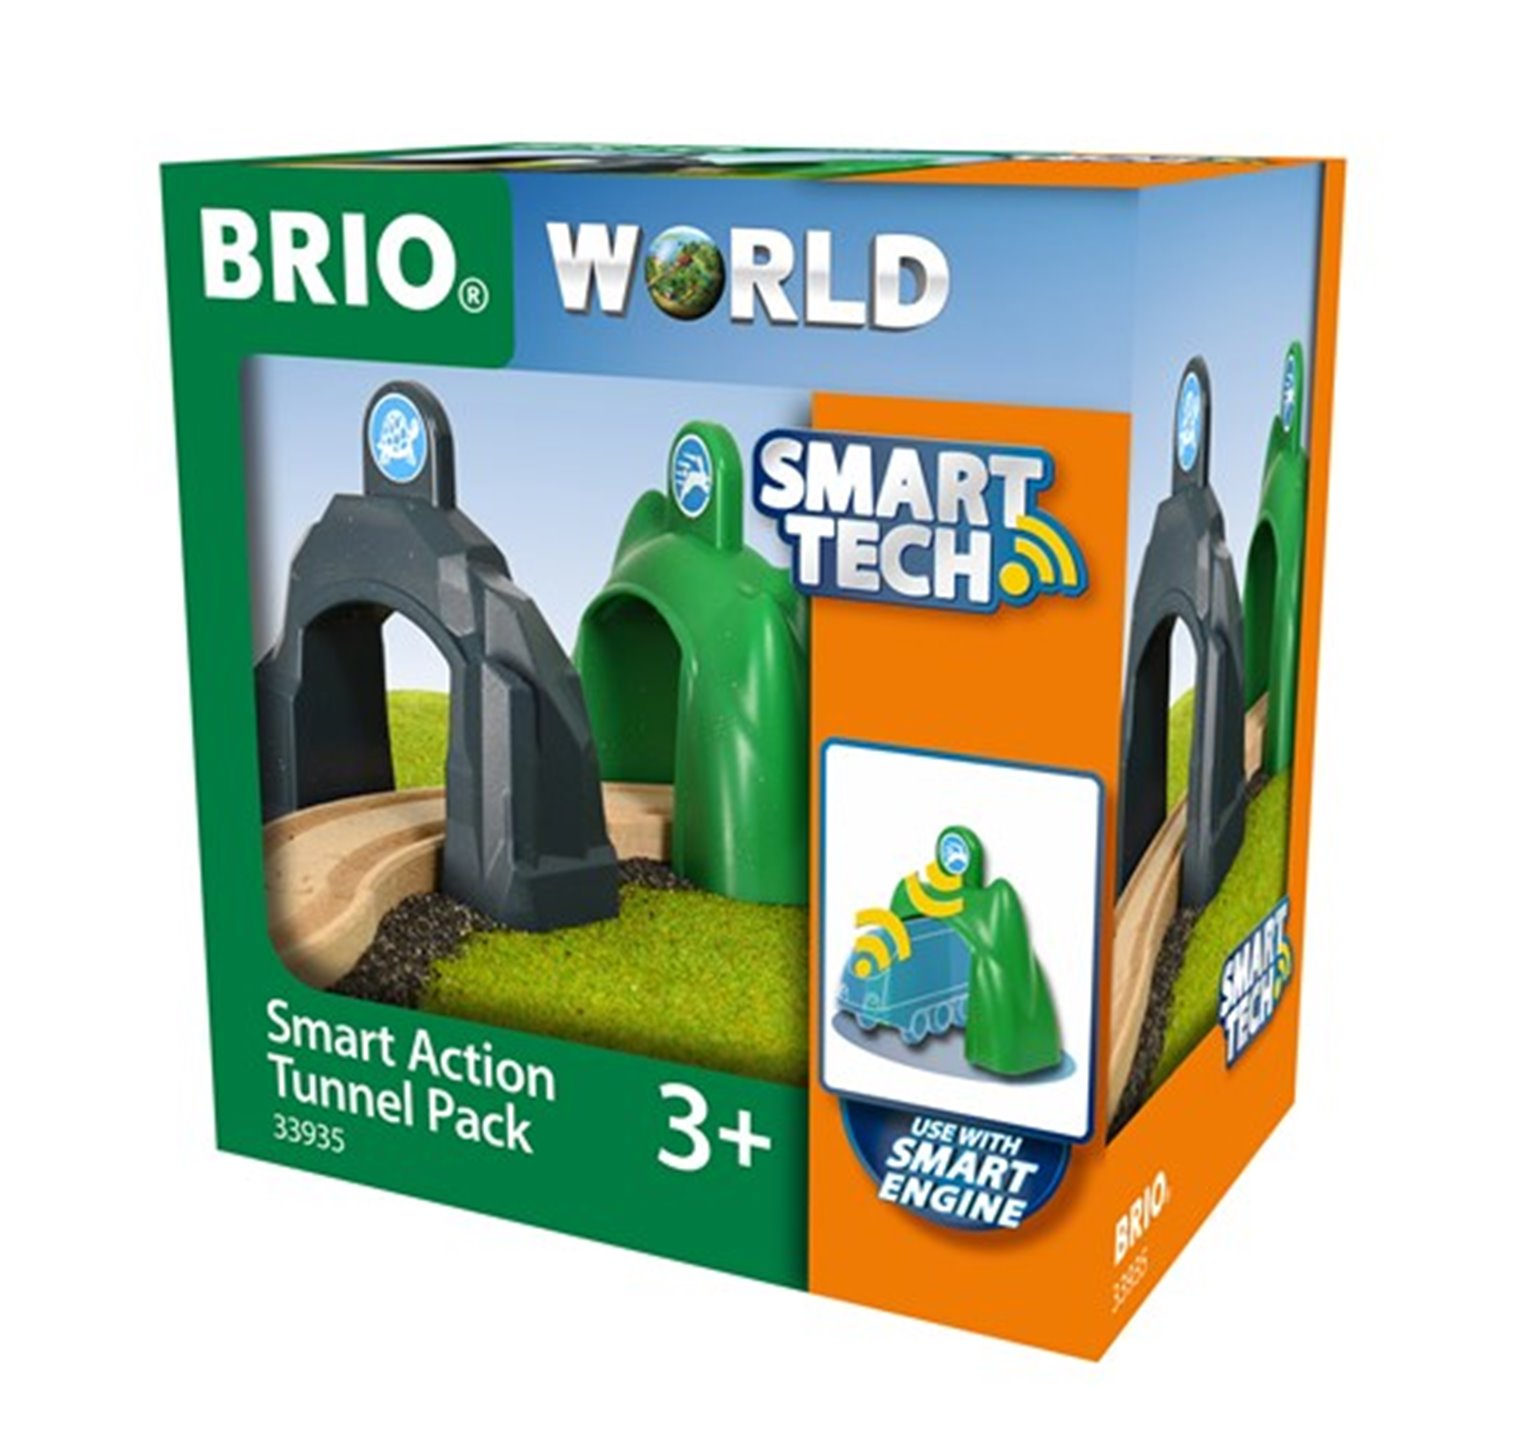 BRIO WORLD - Smart Tech Action Tunnel Pack